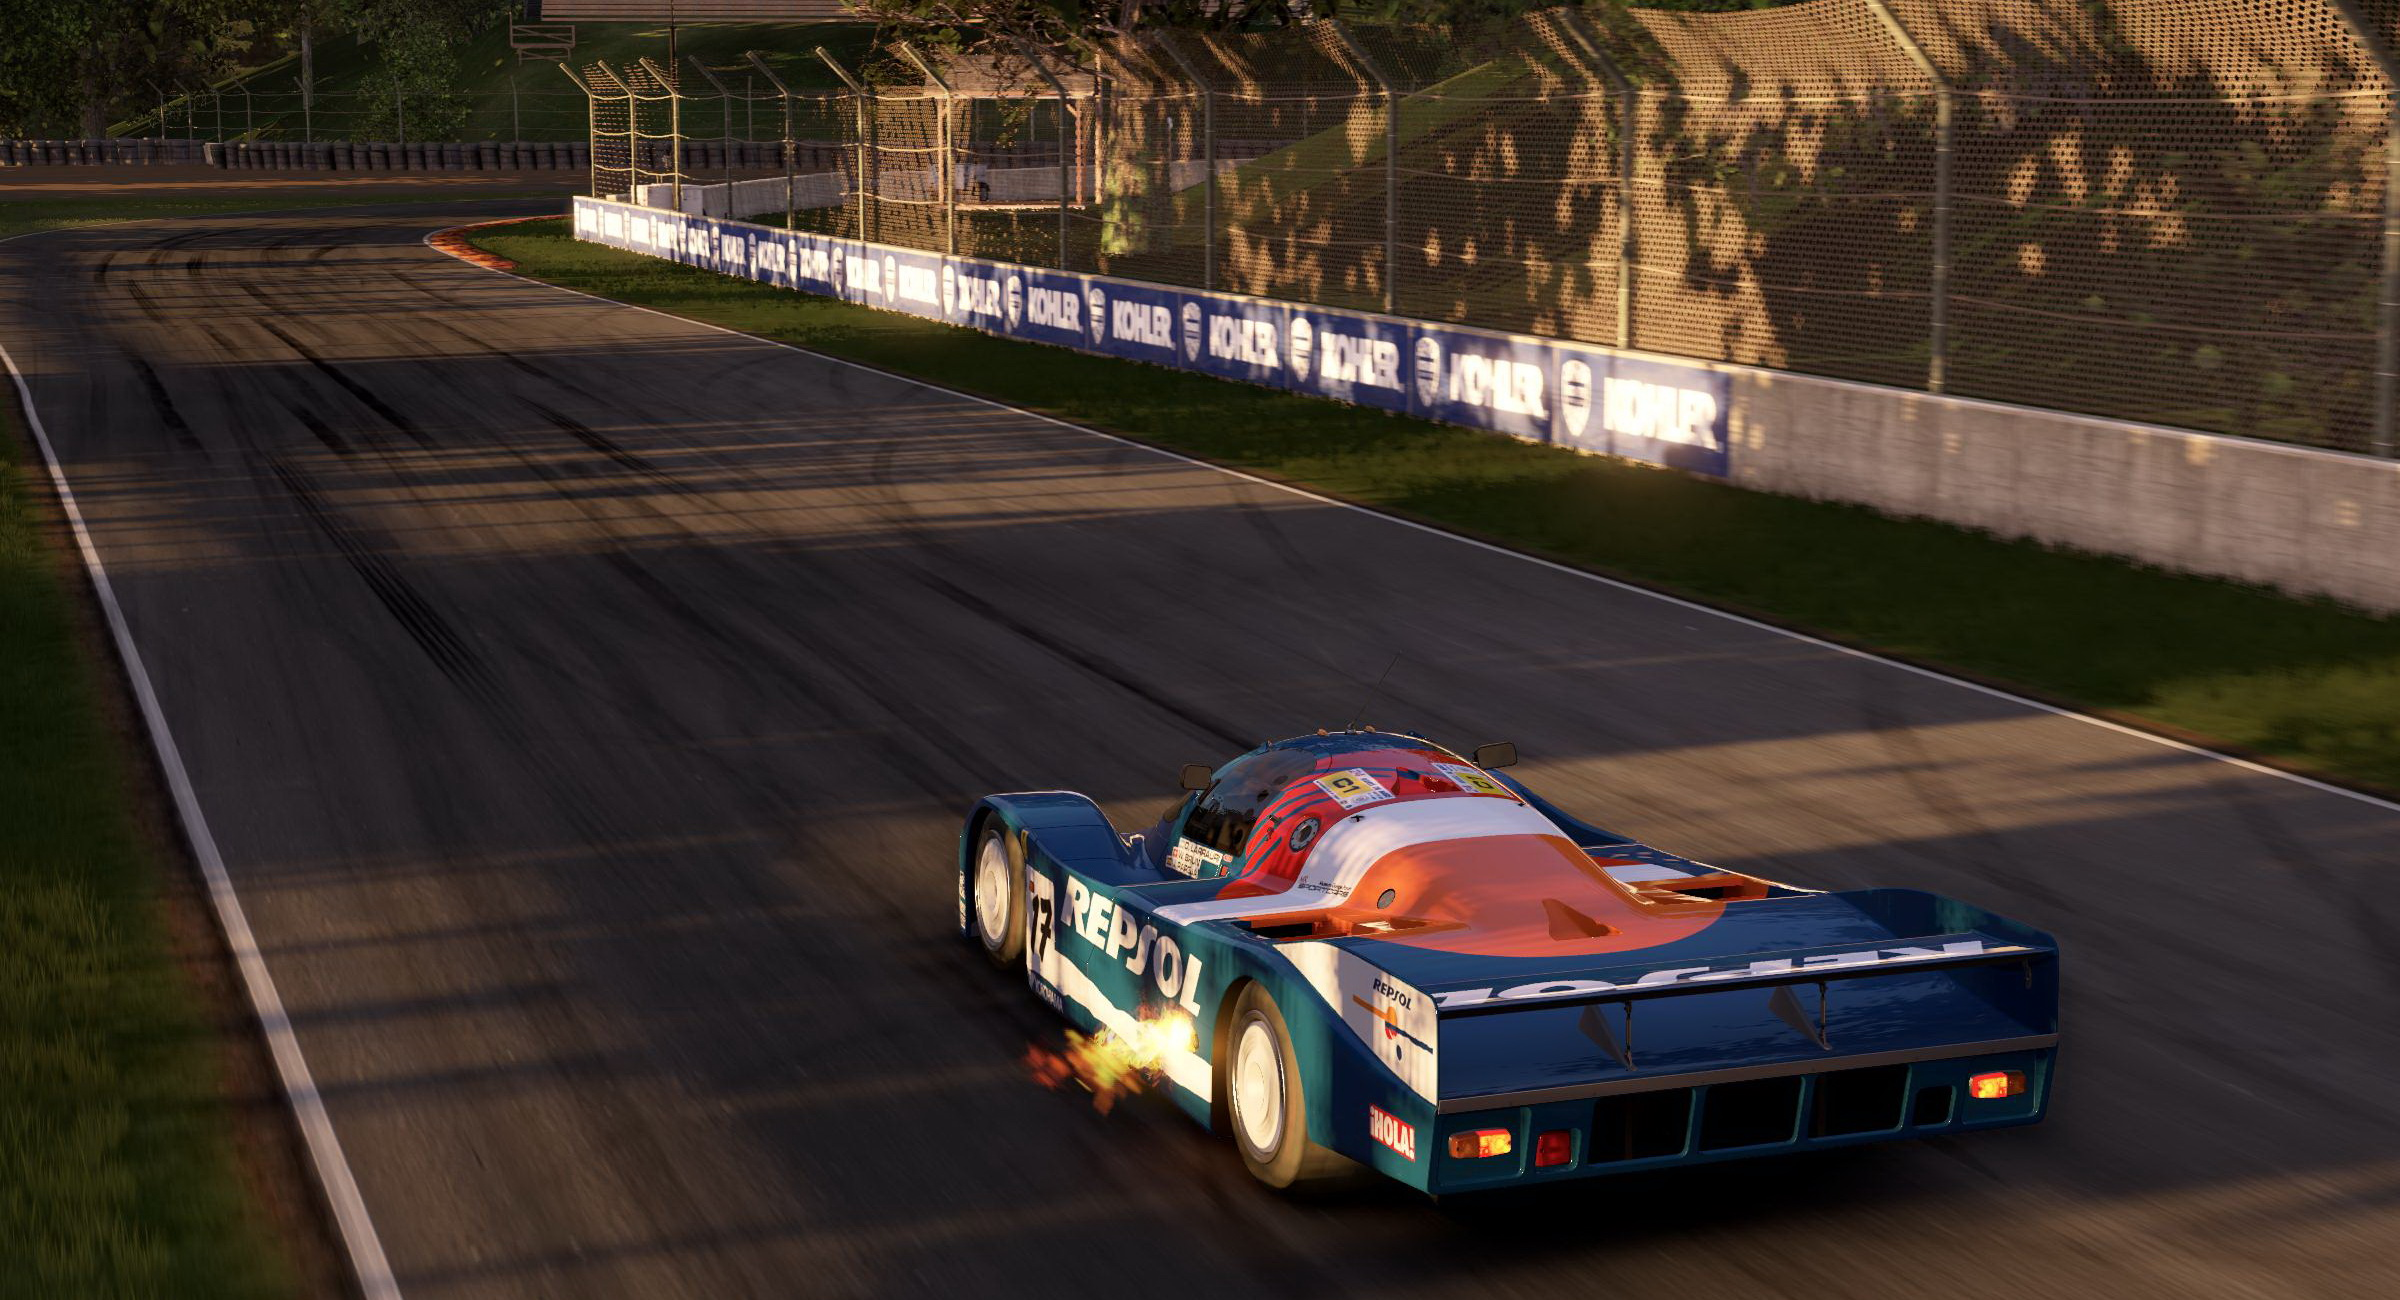 'REPSOL' Porsche 962L at Road America_030.jpg